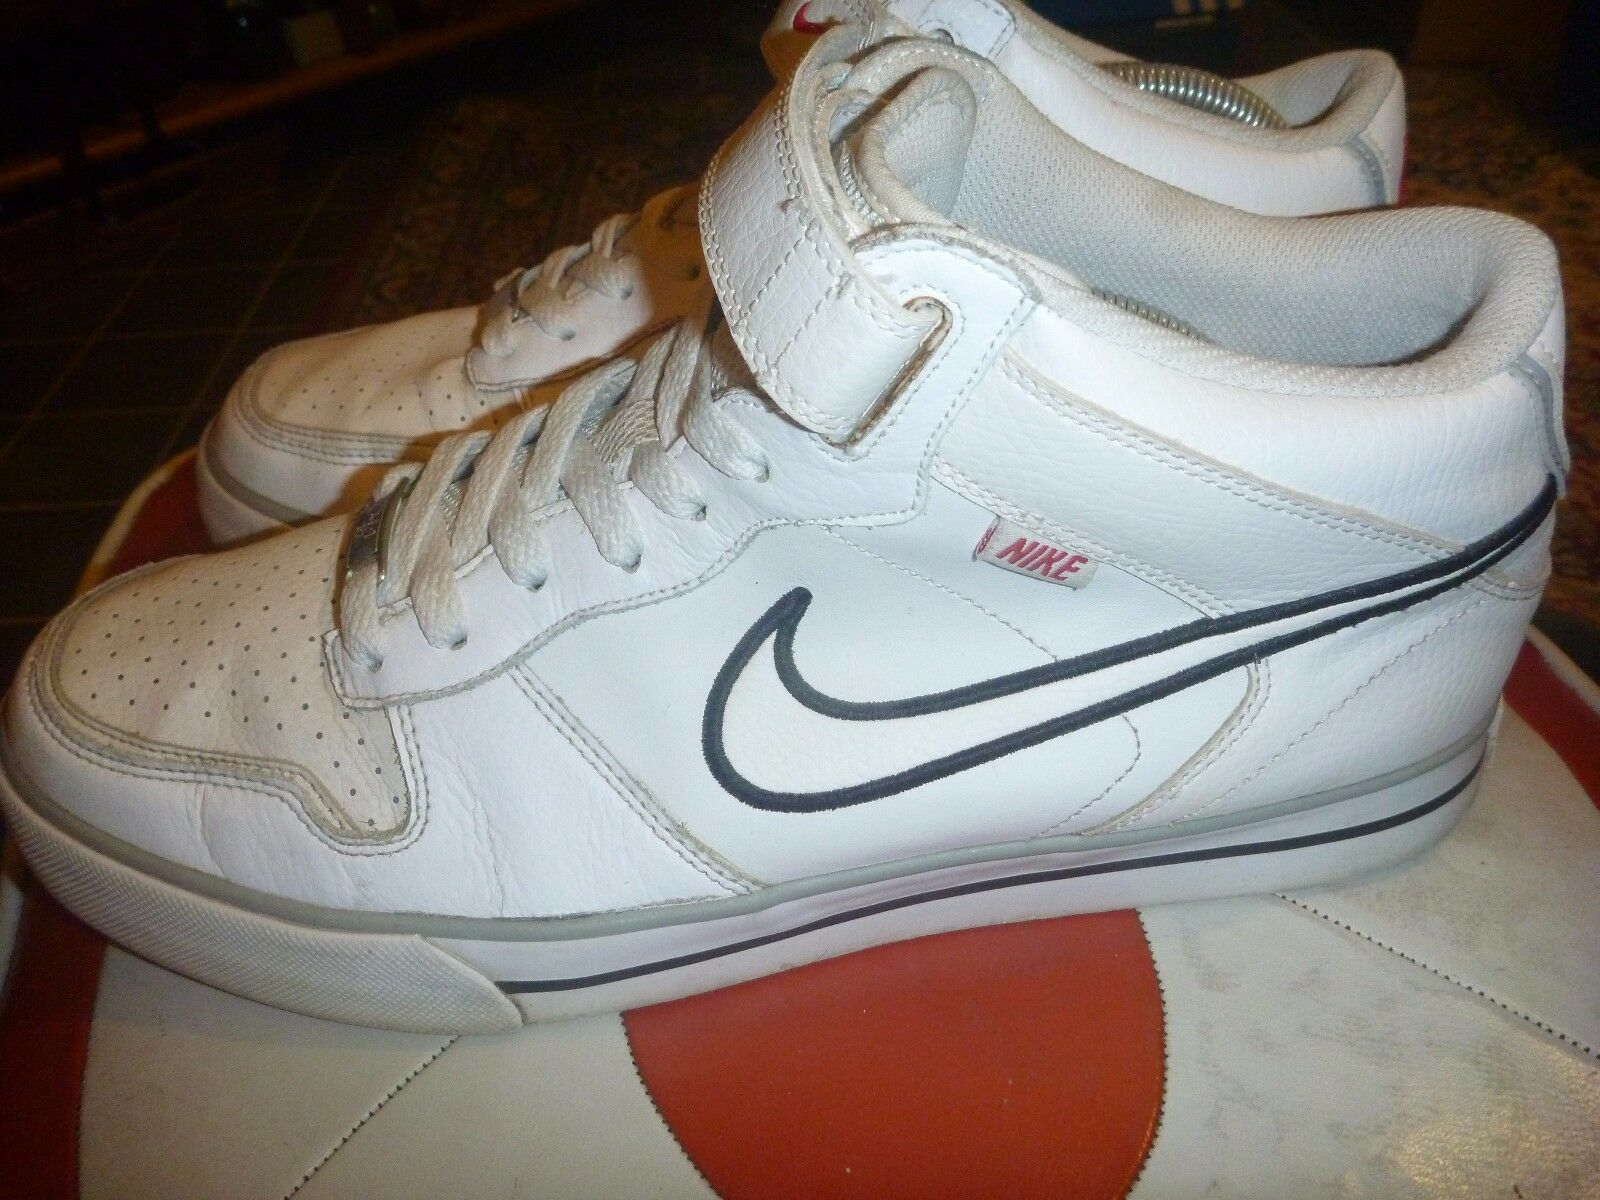 NIKE SELLWOOD MID SIZE WHITE LEATHER TRAINERS The most popular shoes for men and women